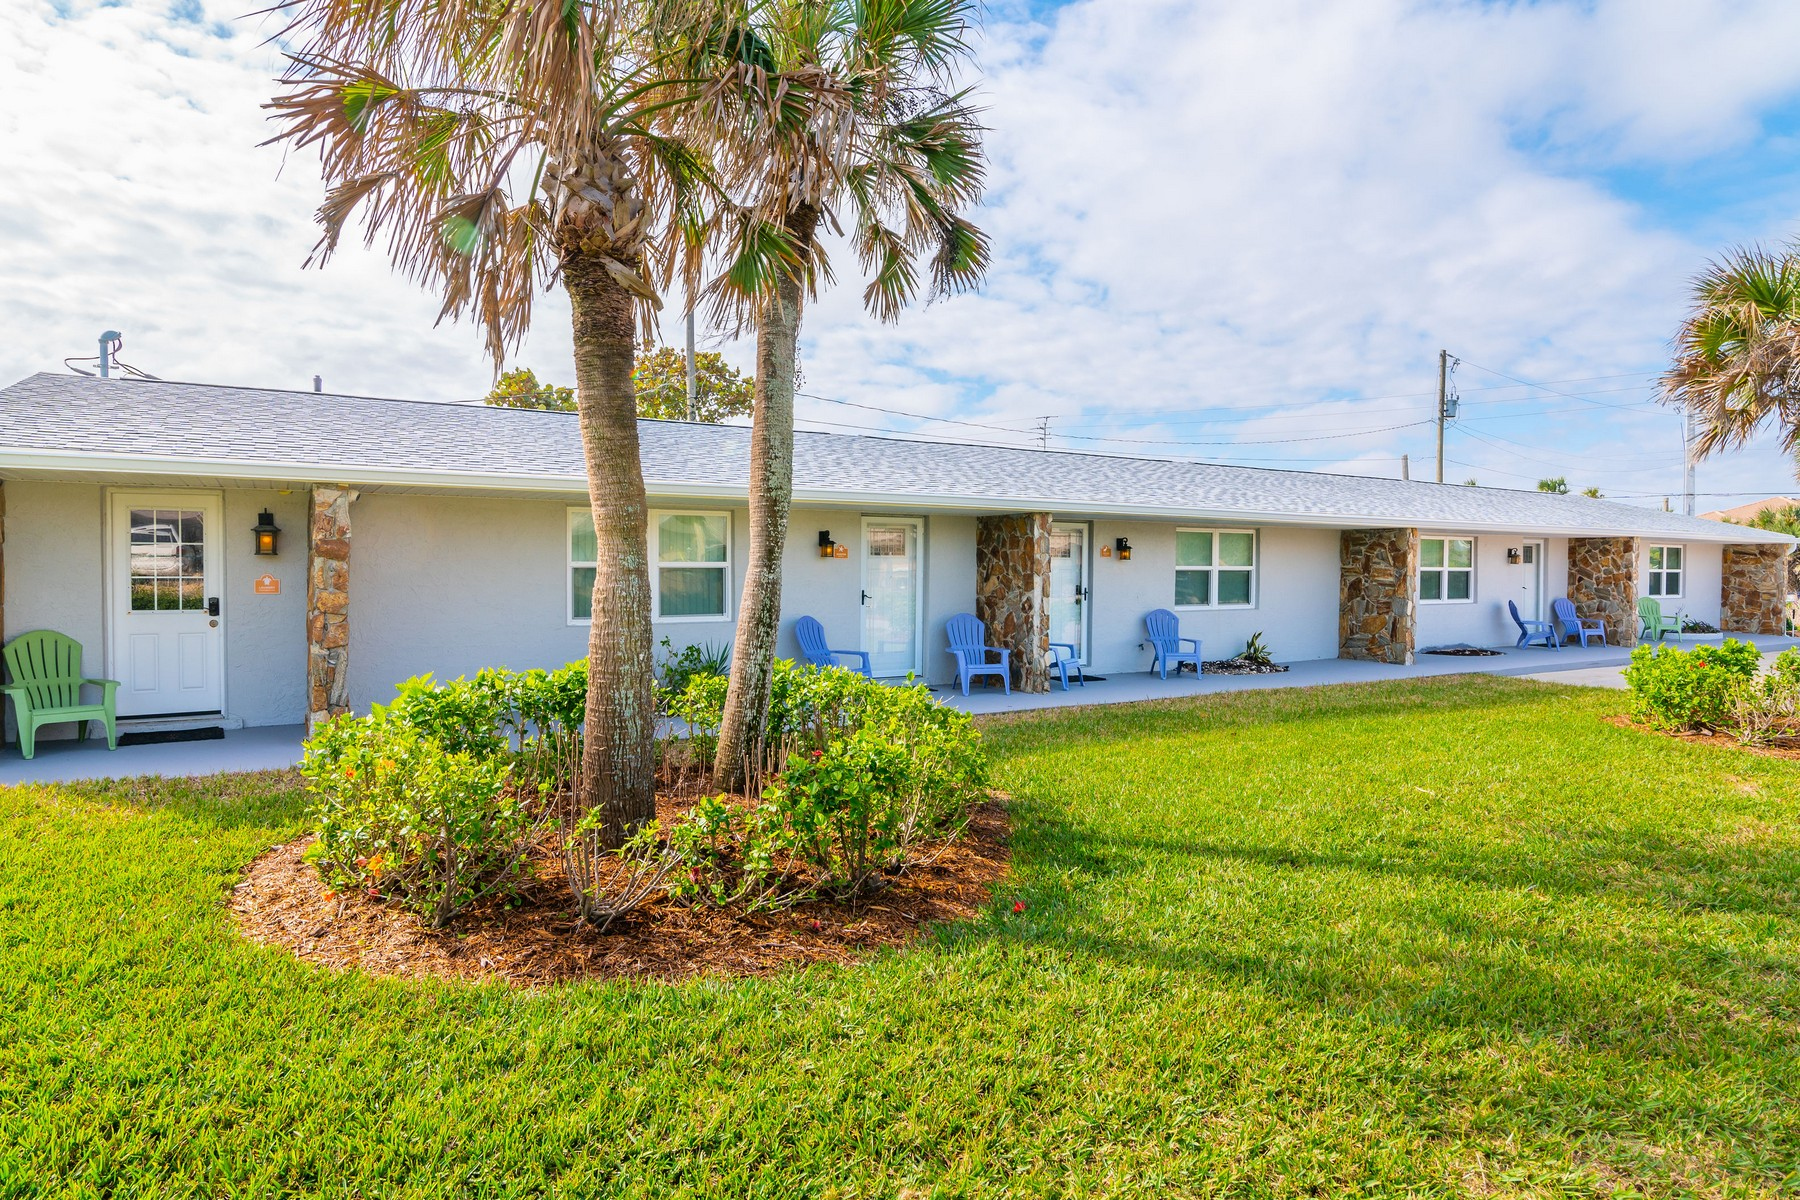 Multi-Family Homes for Active at Tranquility Beach Resort 5695 S Highway A1A Melbourne Beach, Florida 32951 United States